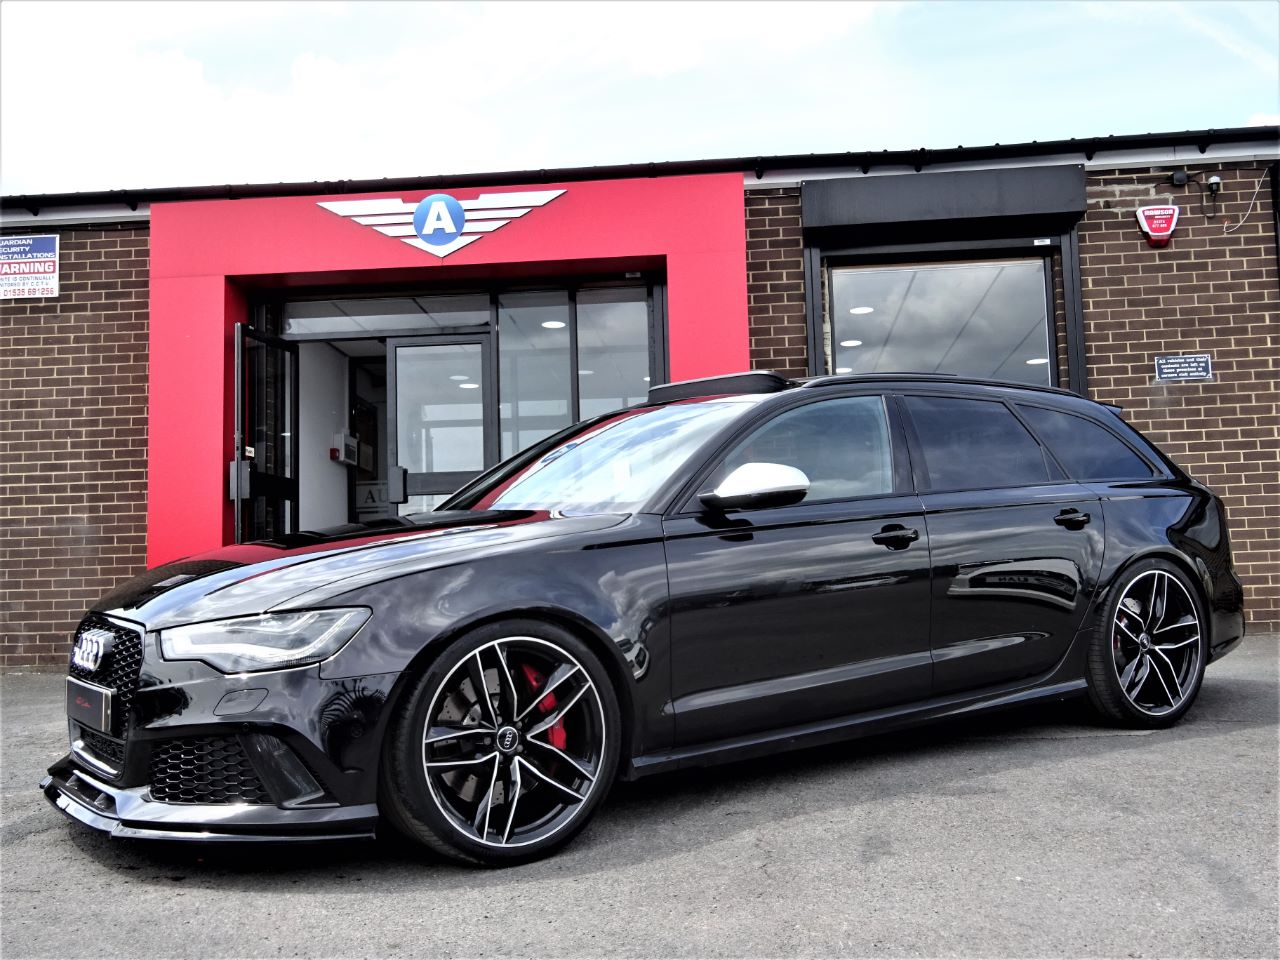 Audi RS6 4.0T FSI V8 Bi-Turbo Quattro Auto MAGIC BLACK PAN ROOF CARBON PACK BLACK PACK LATE 64 REG Estate Petrol Black